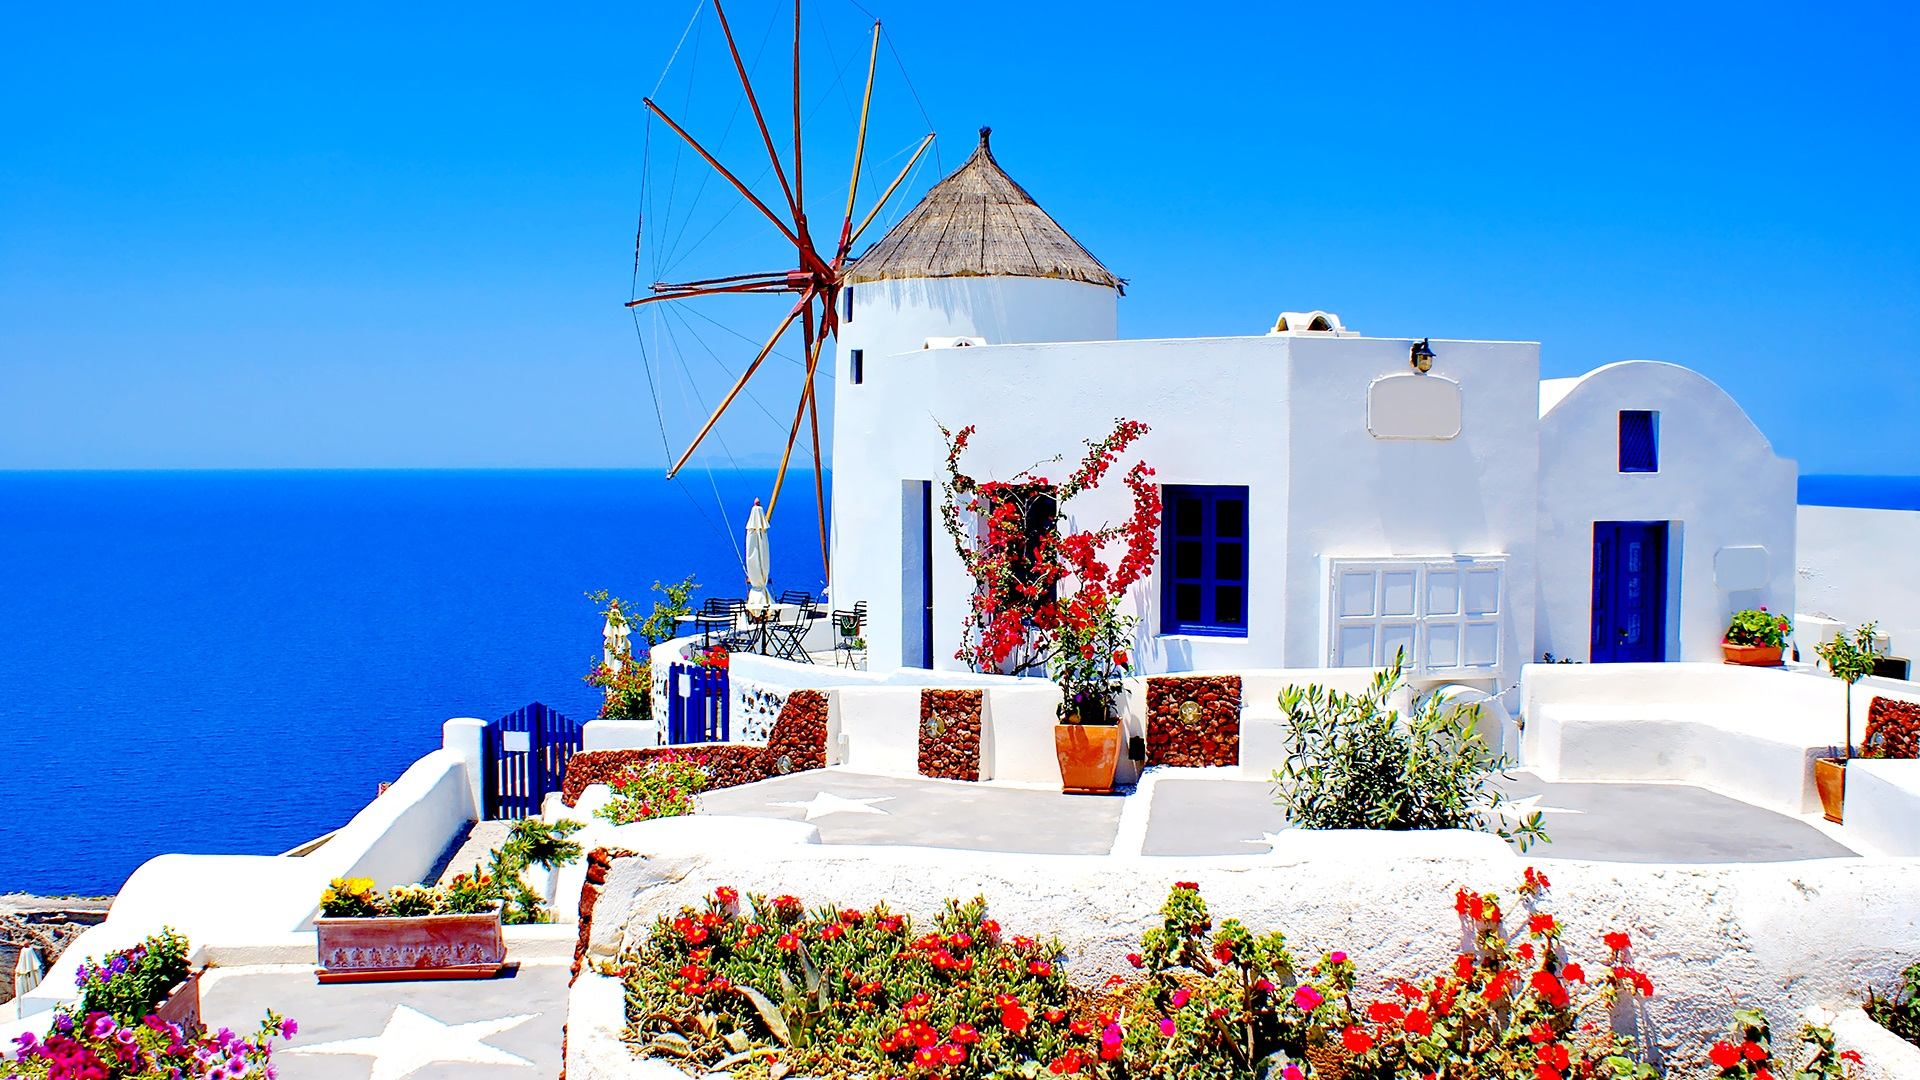 Hotel Belvedere Suites Santorini Greece Holidays Reviews Itaka